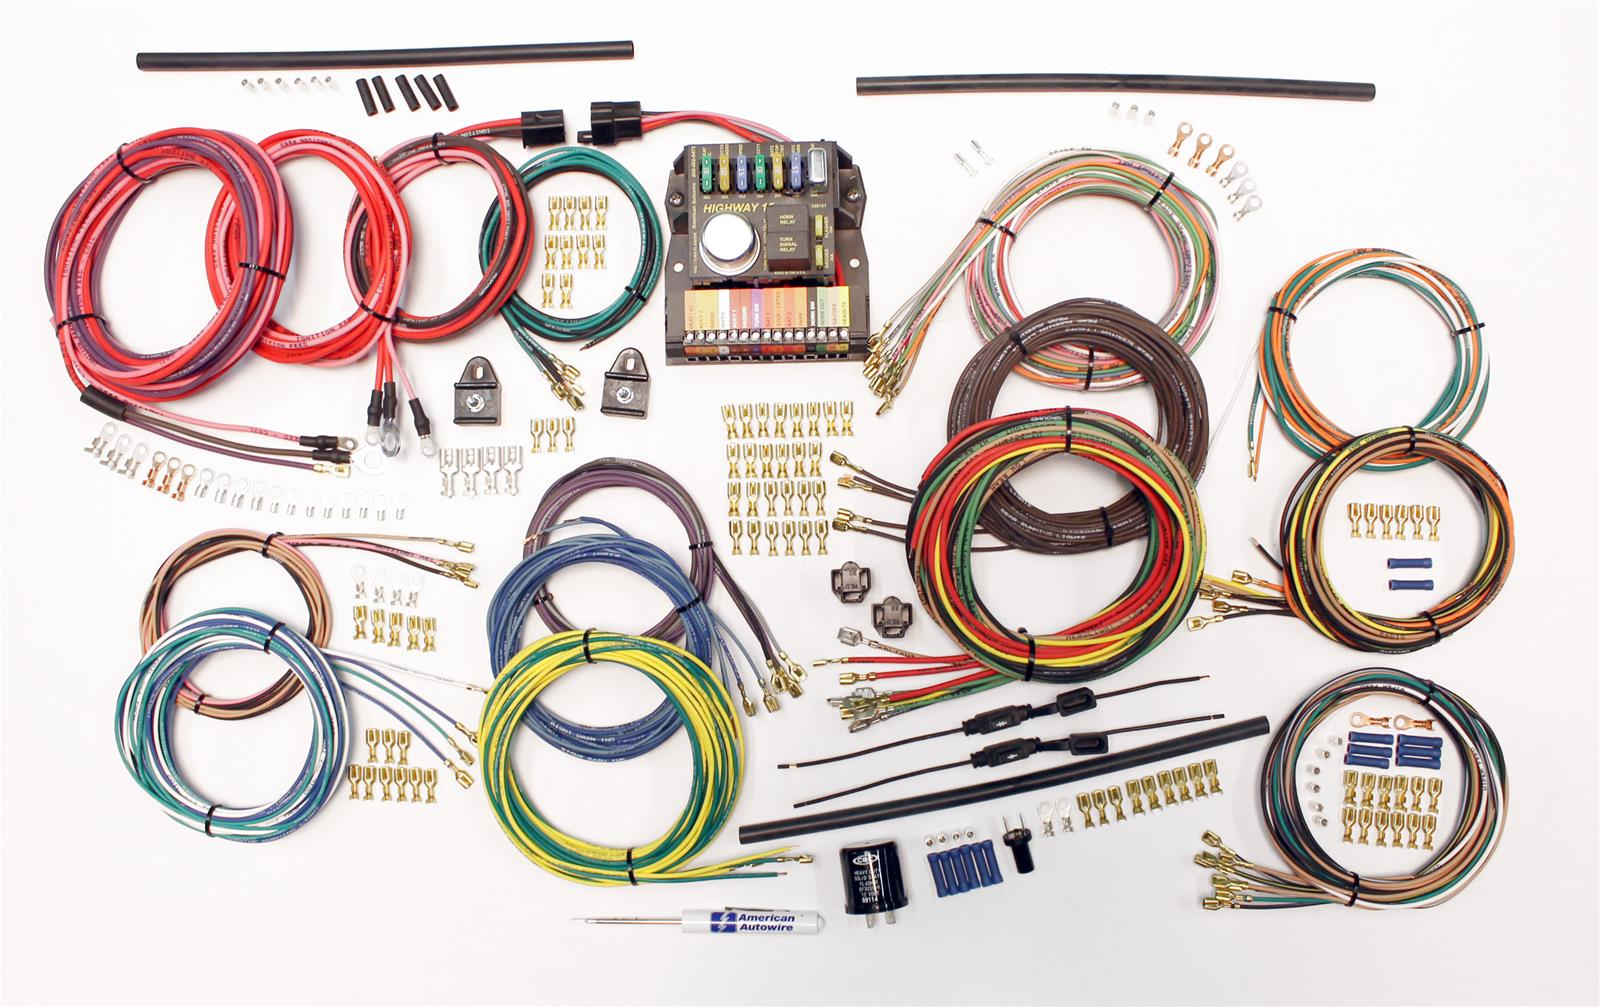 American Autowire Classic Update Series Wiring Harness Kits 510419 - Free  Shipping on Orders Over $99 at Summit Racing